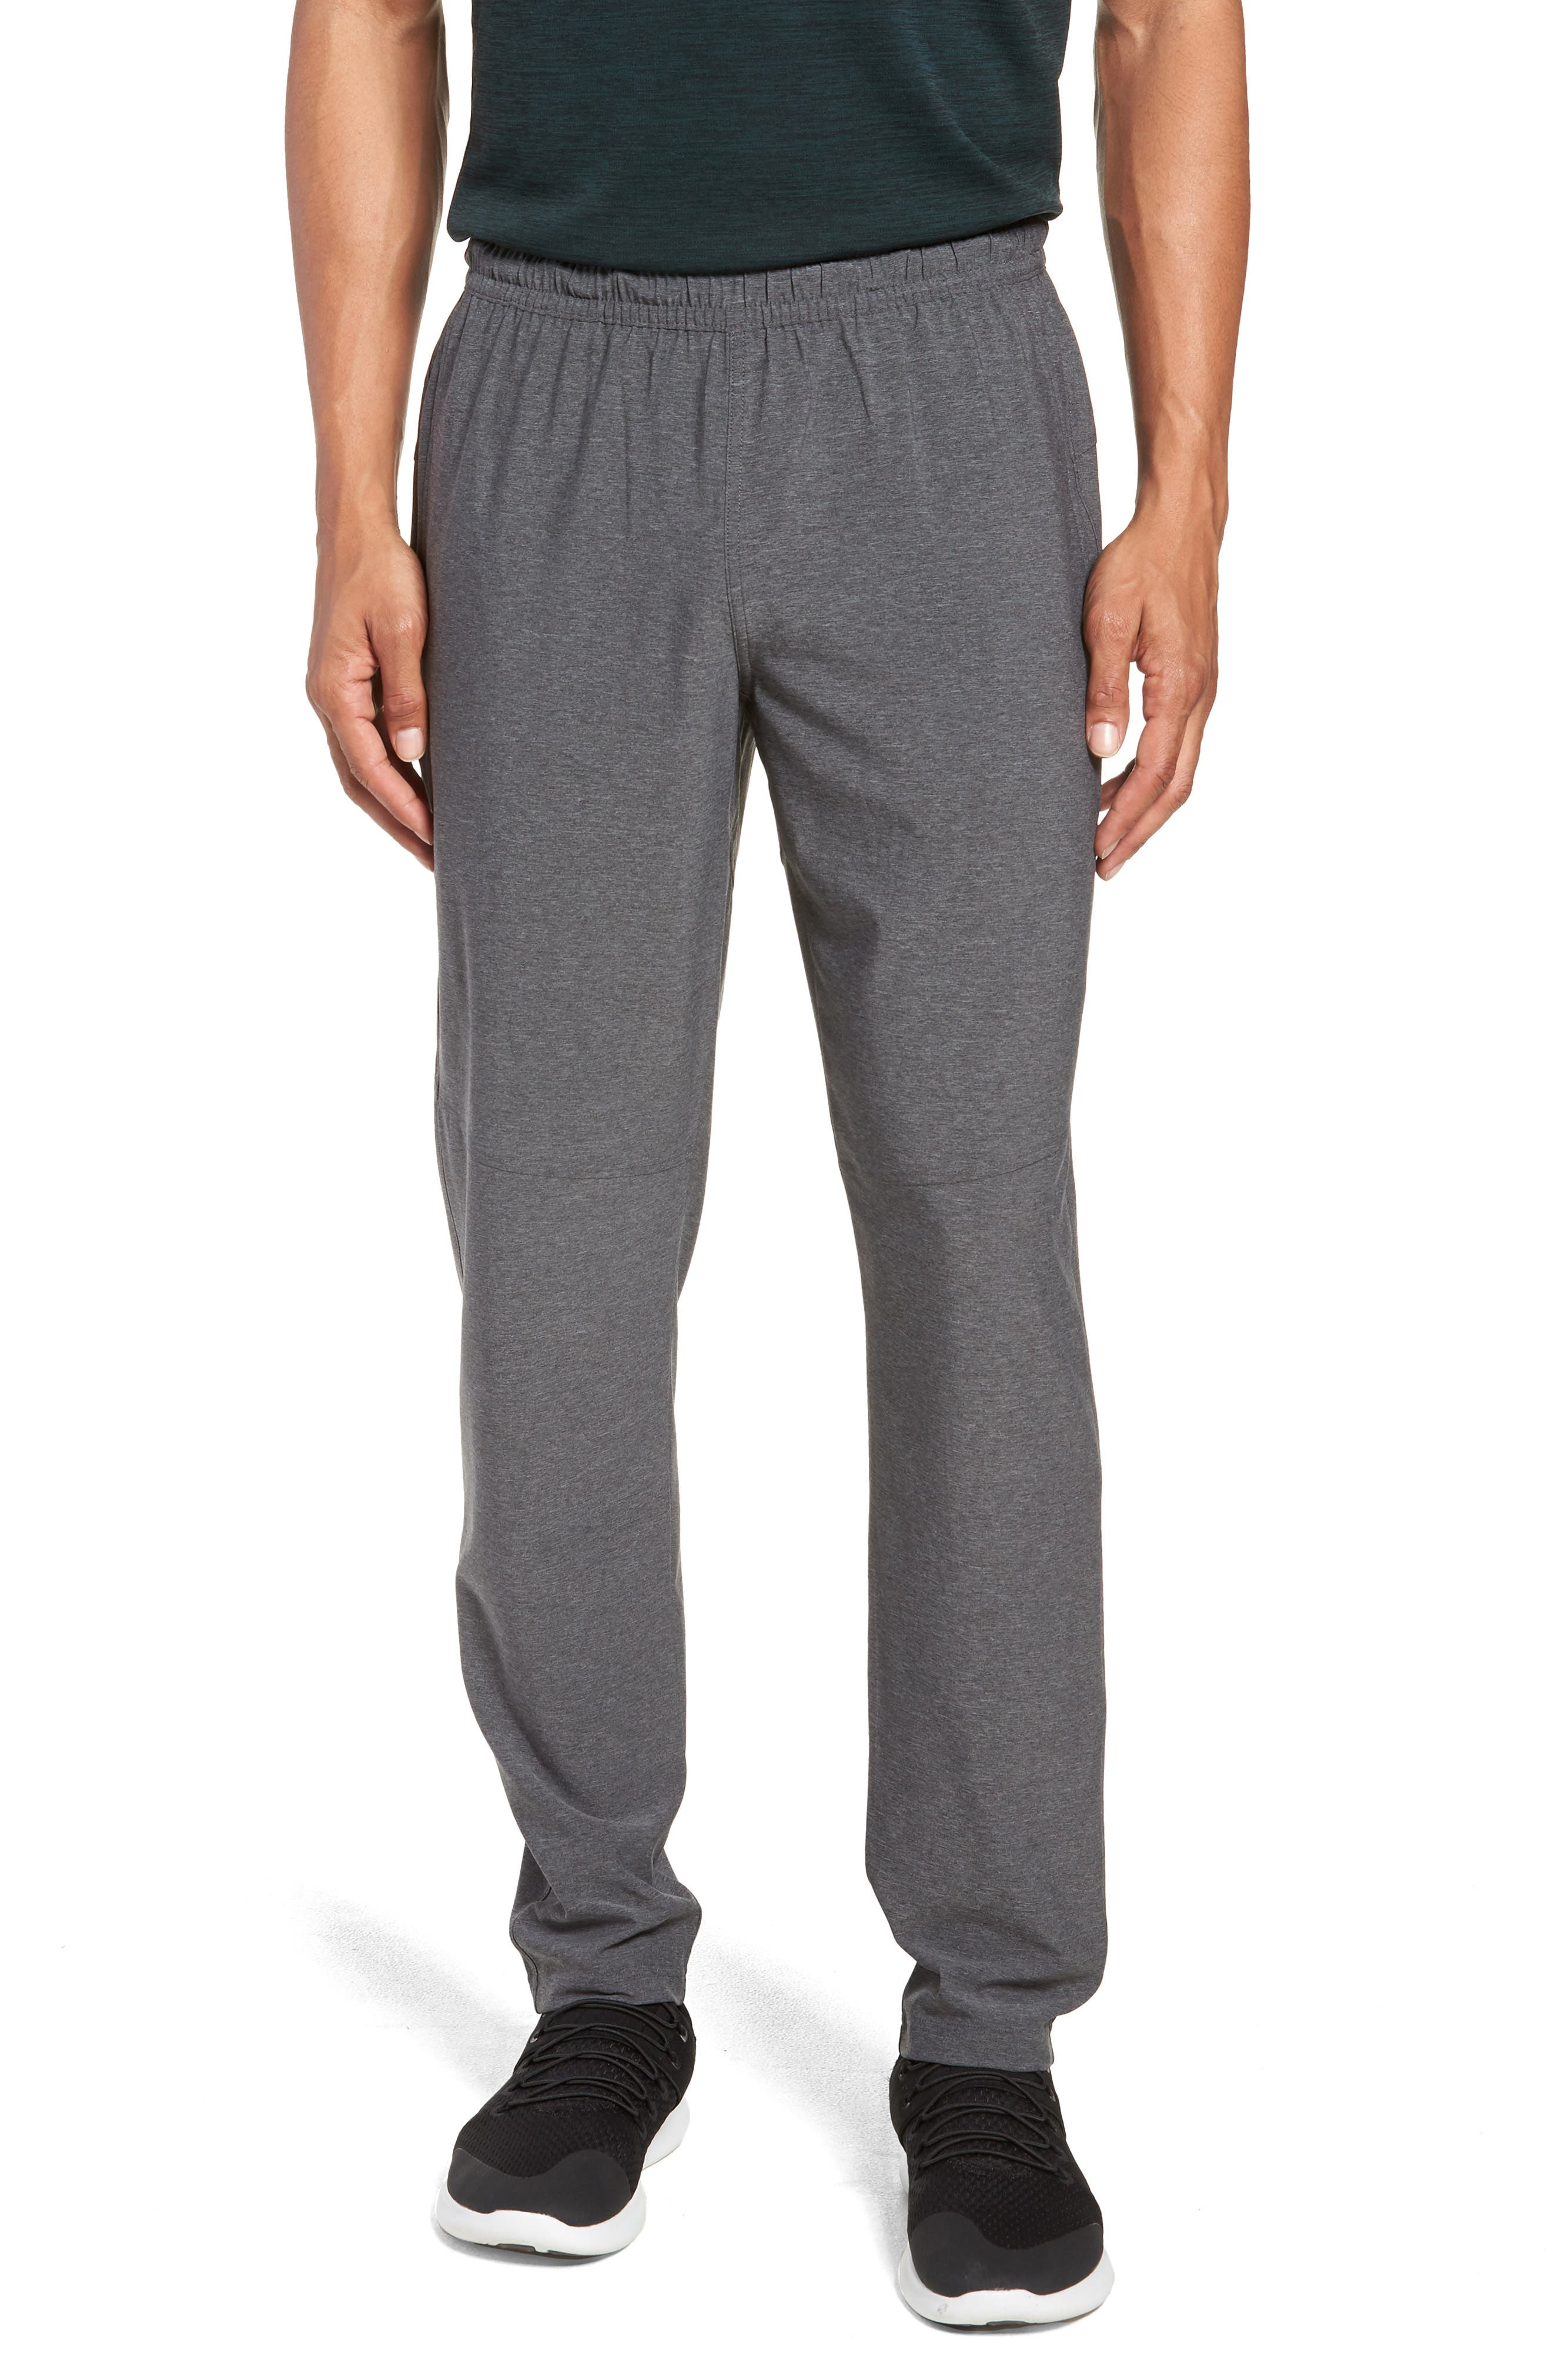 ZELLA, Tapered Stretch Track Pants, Main thumbnail 1, color, GREY OBSIDIAN MELANGE